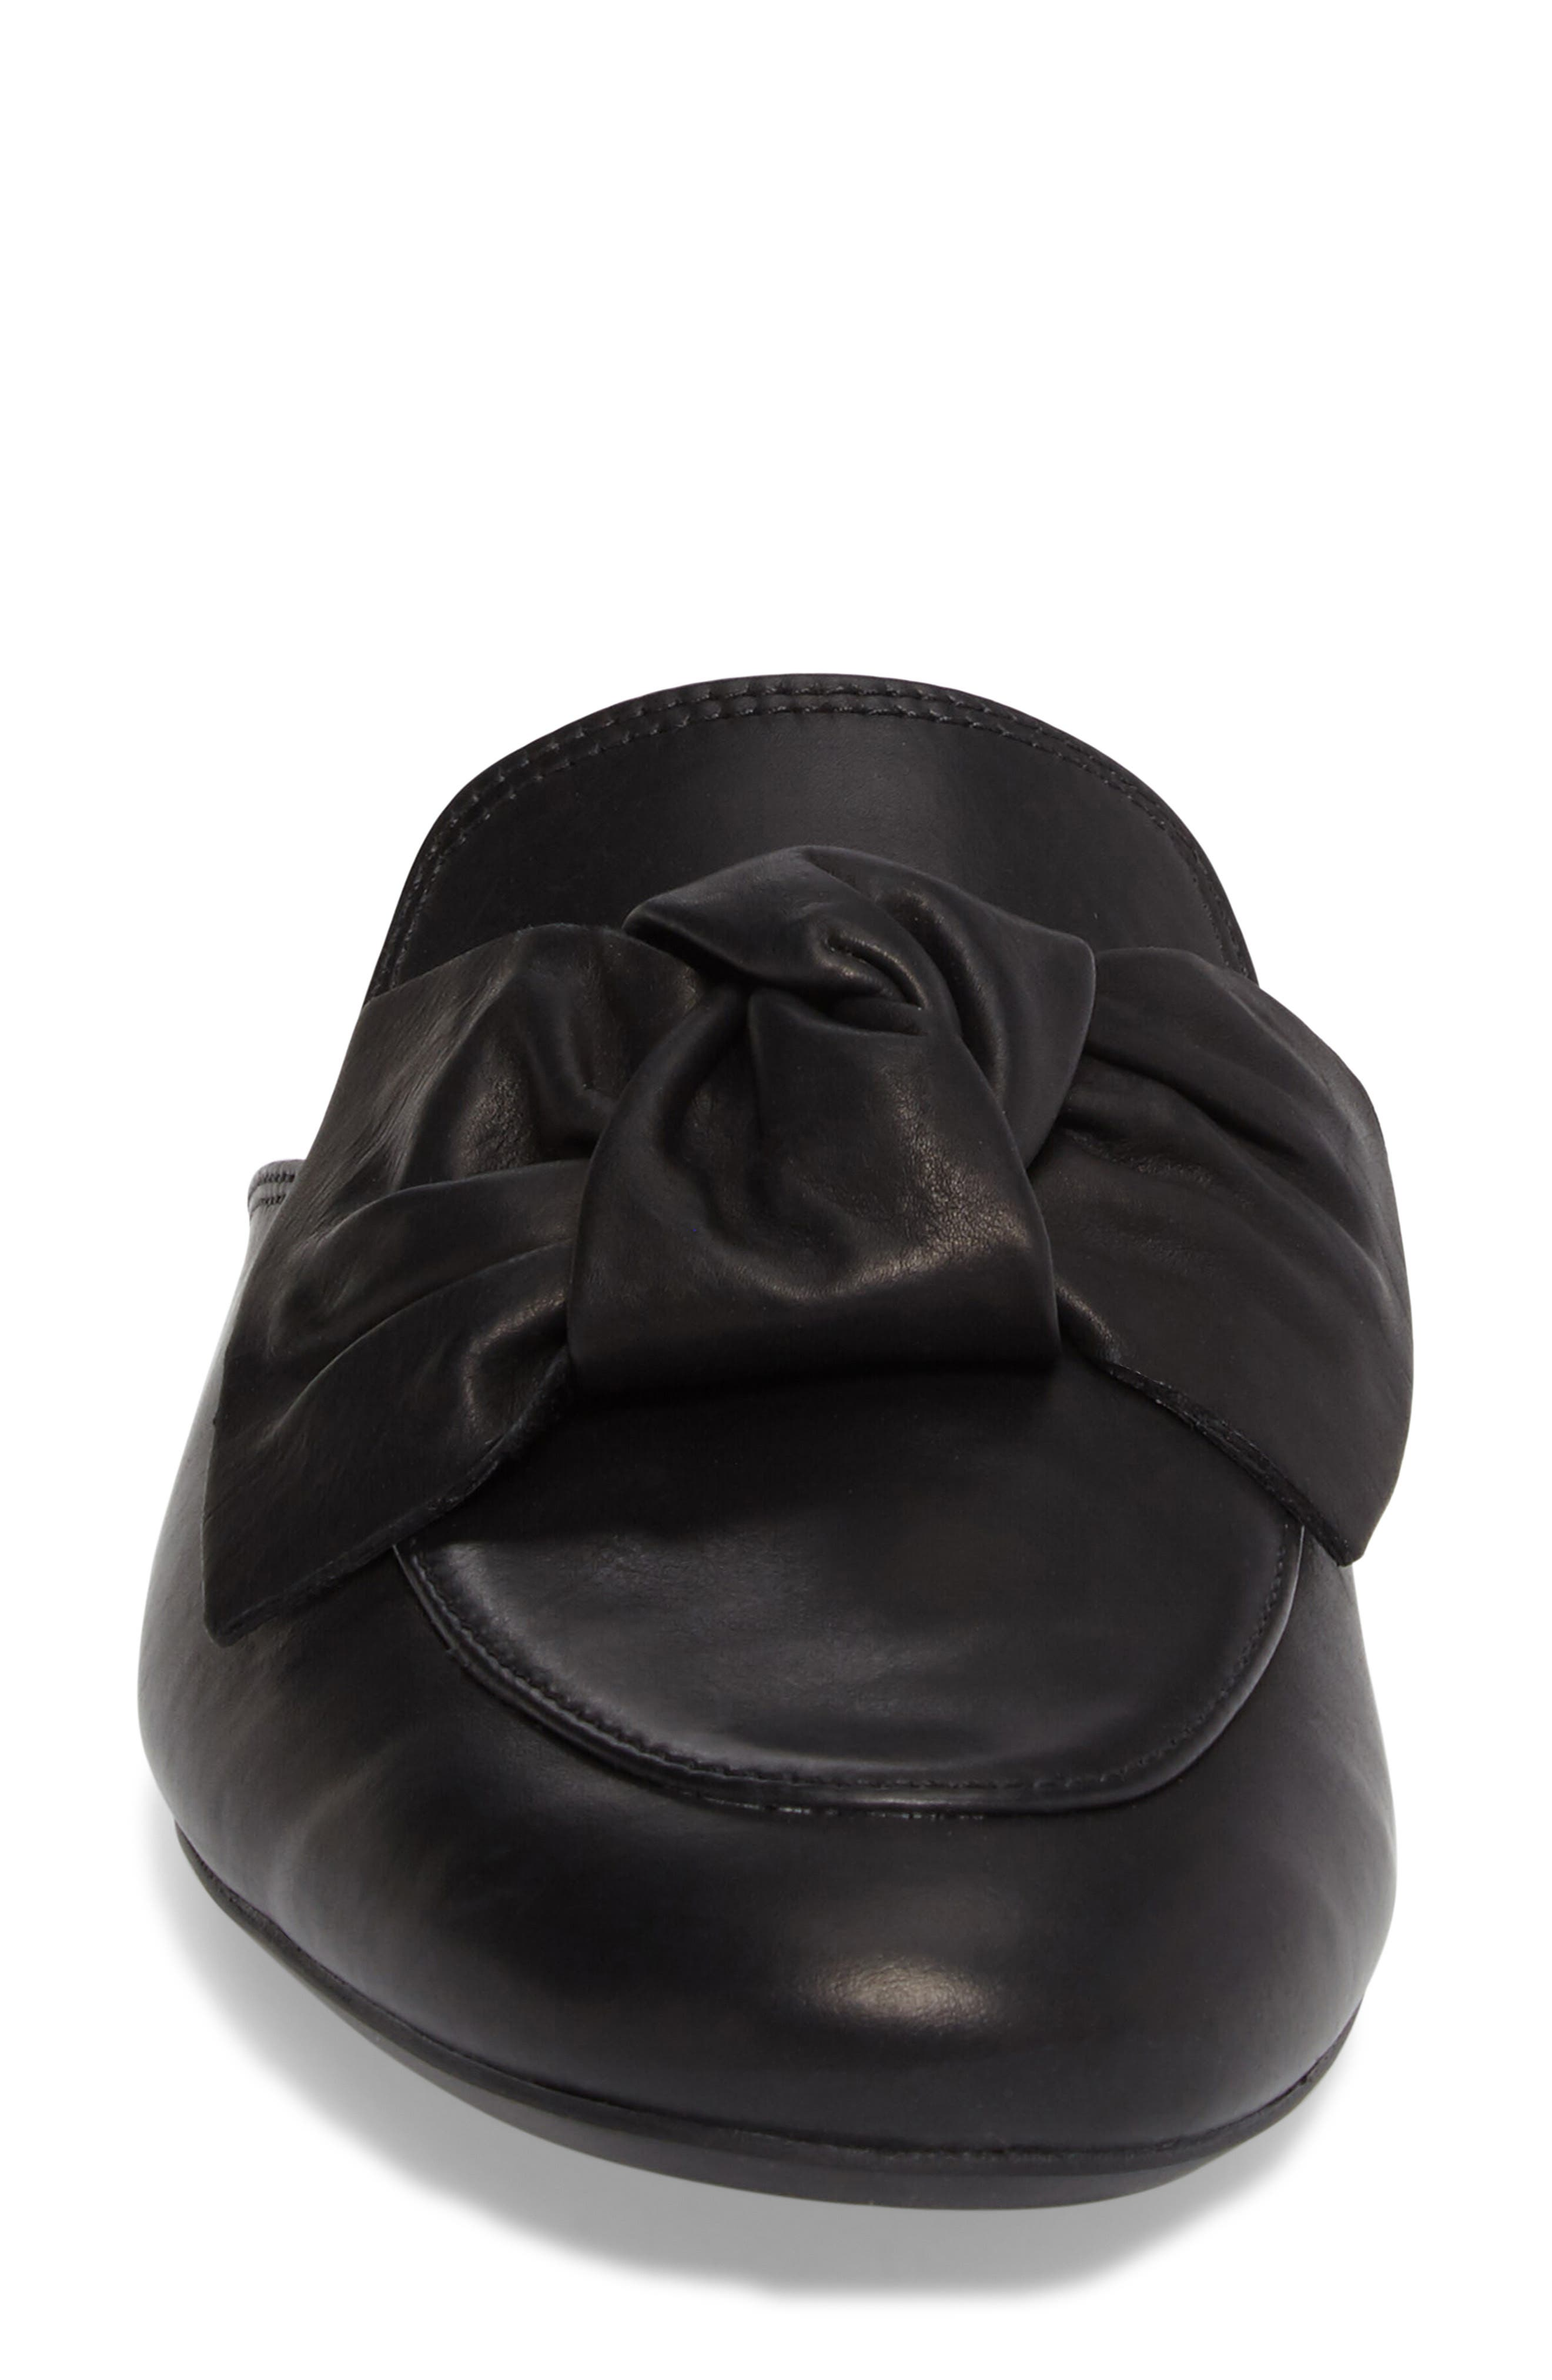 Mary Bow Mule Loafer,                             Alternate thumbnail 4, color,                             Black Leather